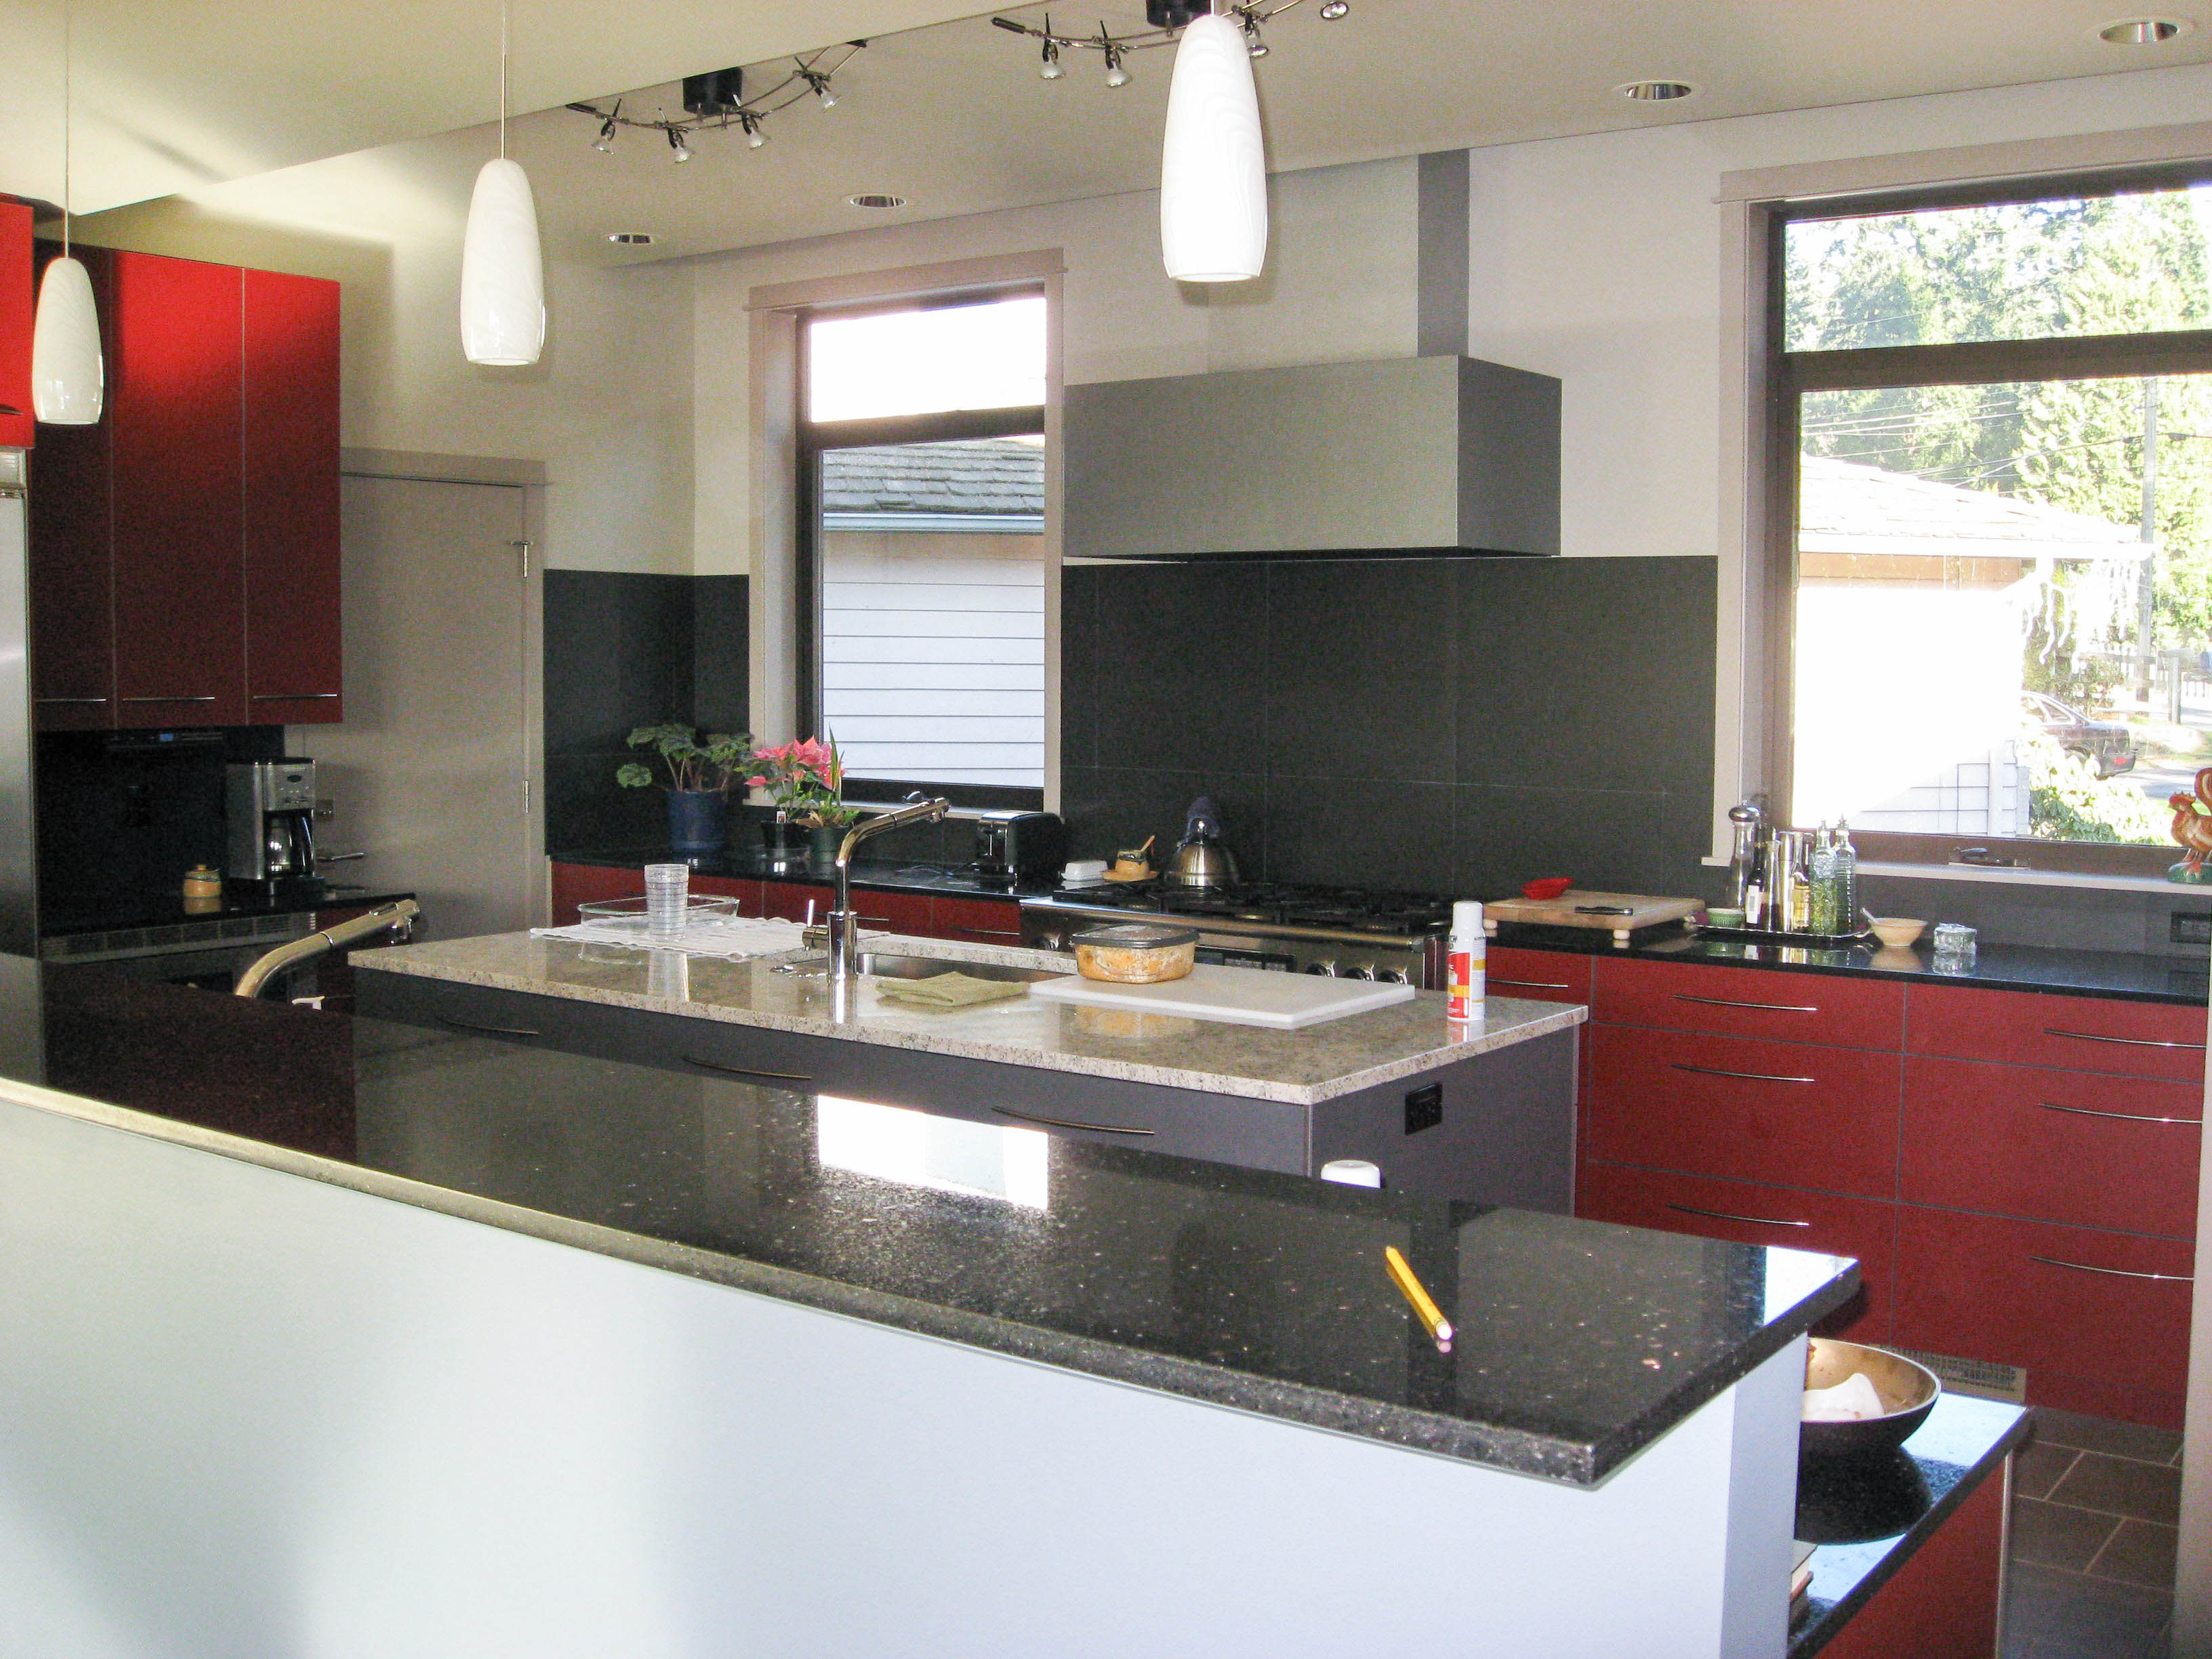 Kitchen Backsplash s Seattle Tile Contractor